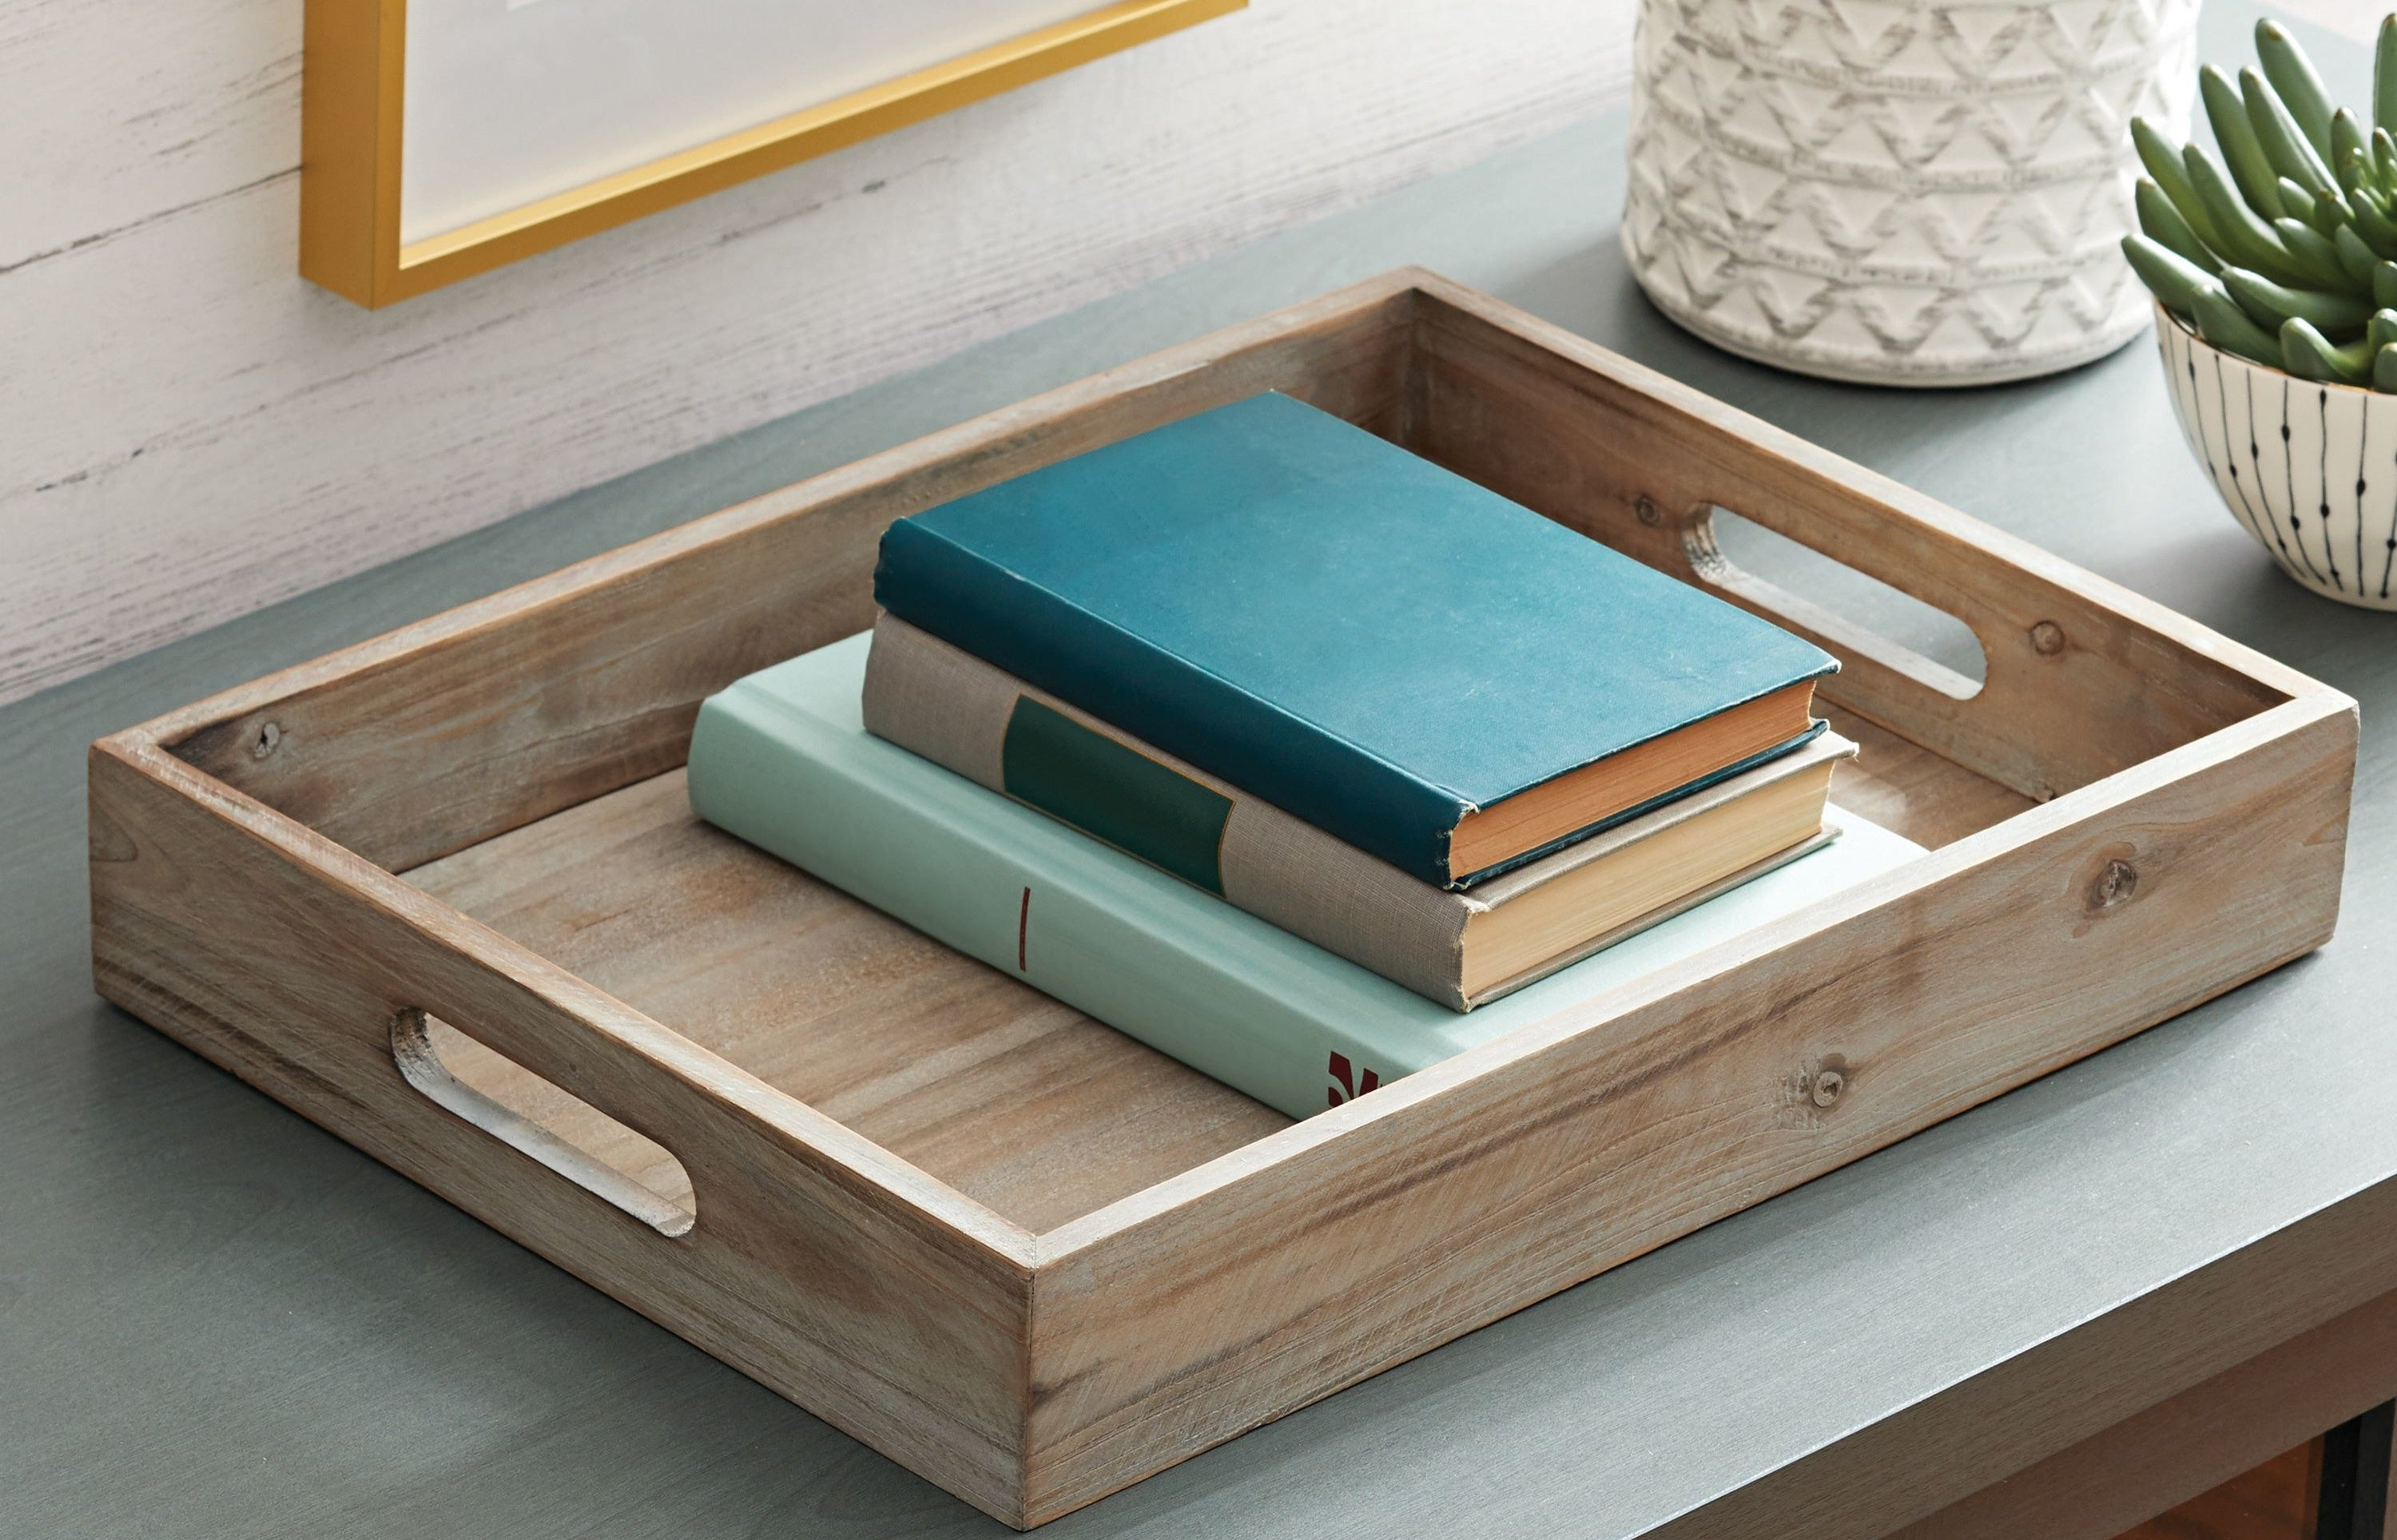 The wooden tray holding some books